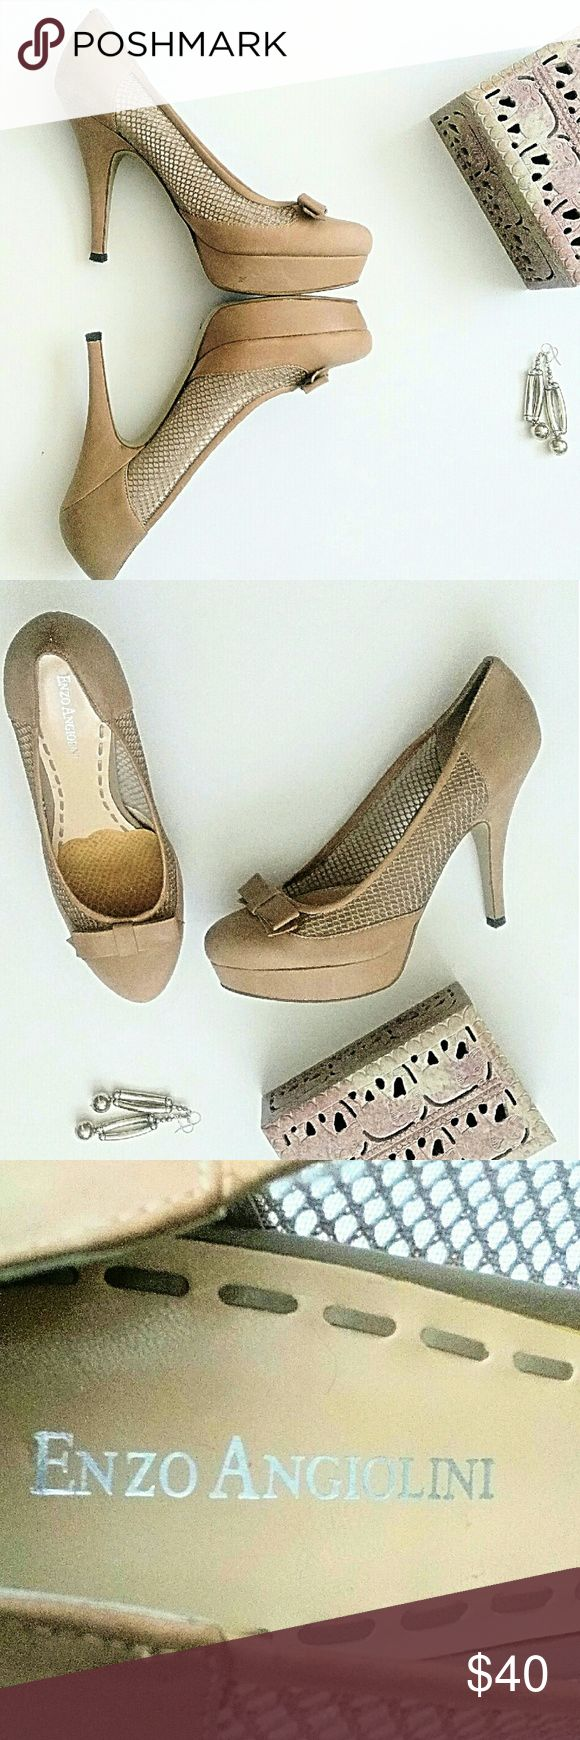 Hump Day💲Drop! Enzo Angiolini Leather Beige Pump 100% leather uppers with textile mesh inserts adorning both sides of shoes. Chic bow on almond-toe shoe fronts. Heels approx. 4.5in. w/comfortable 1in platforms to making walking easy. Height without the pain!  EUC, worn once in a wedding.  Every woman needs this kind of full on neutral pump.**Ask questions B4 U buy!** Enzo Angiolini Shoes Heels